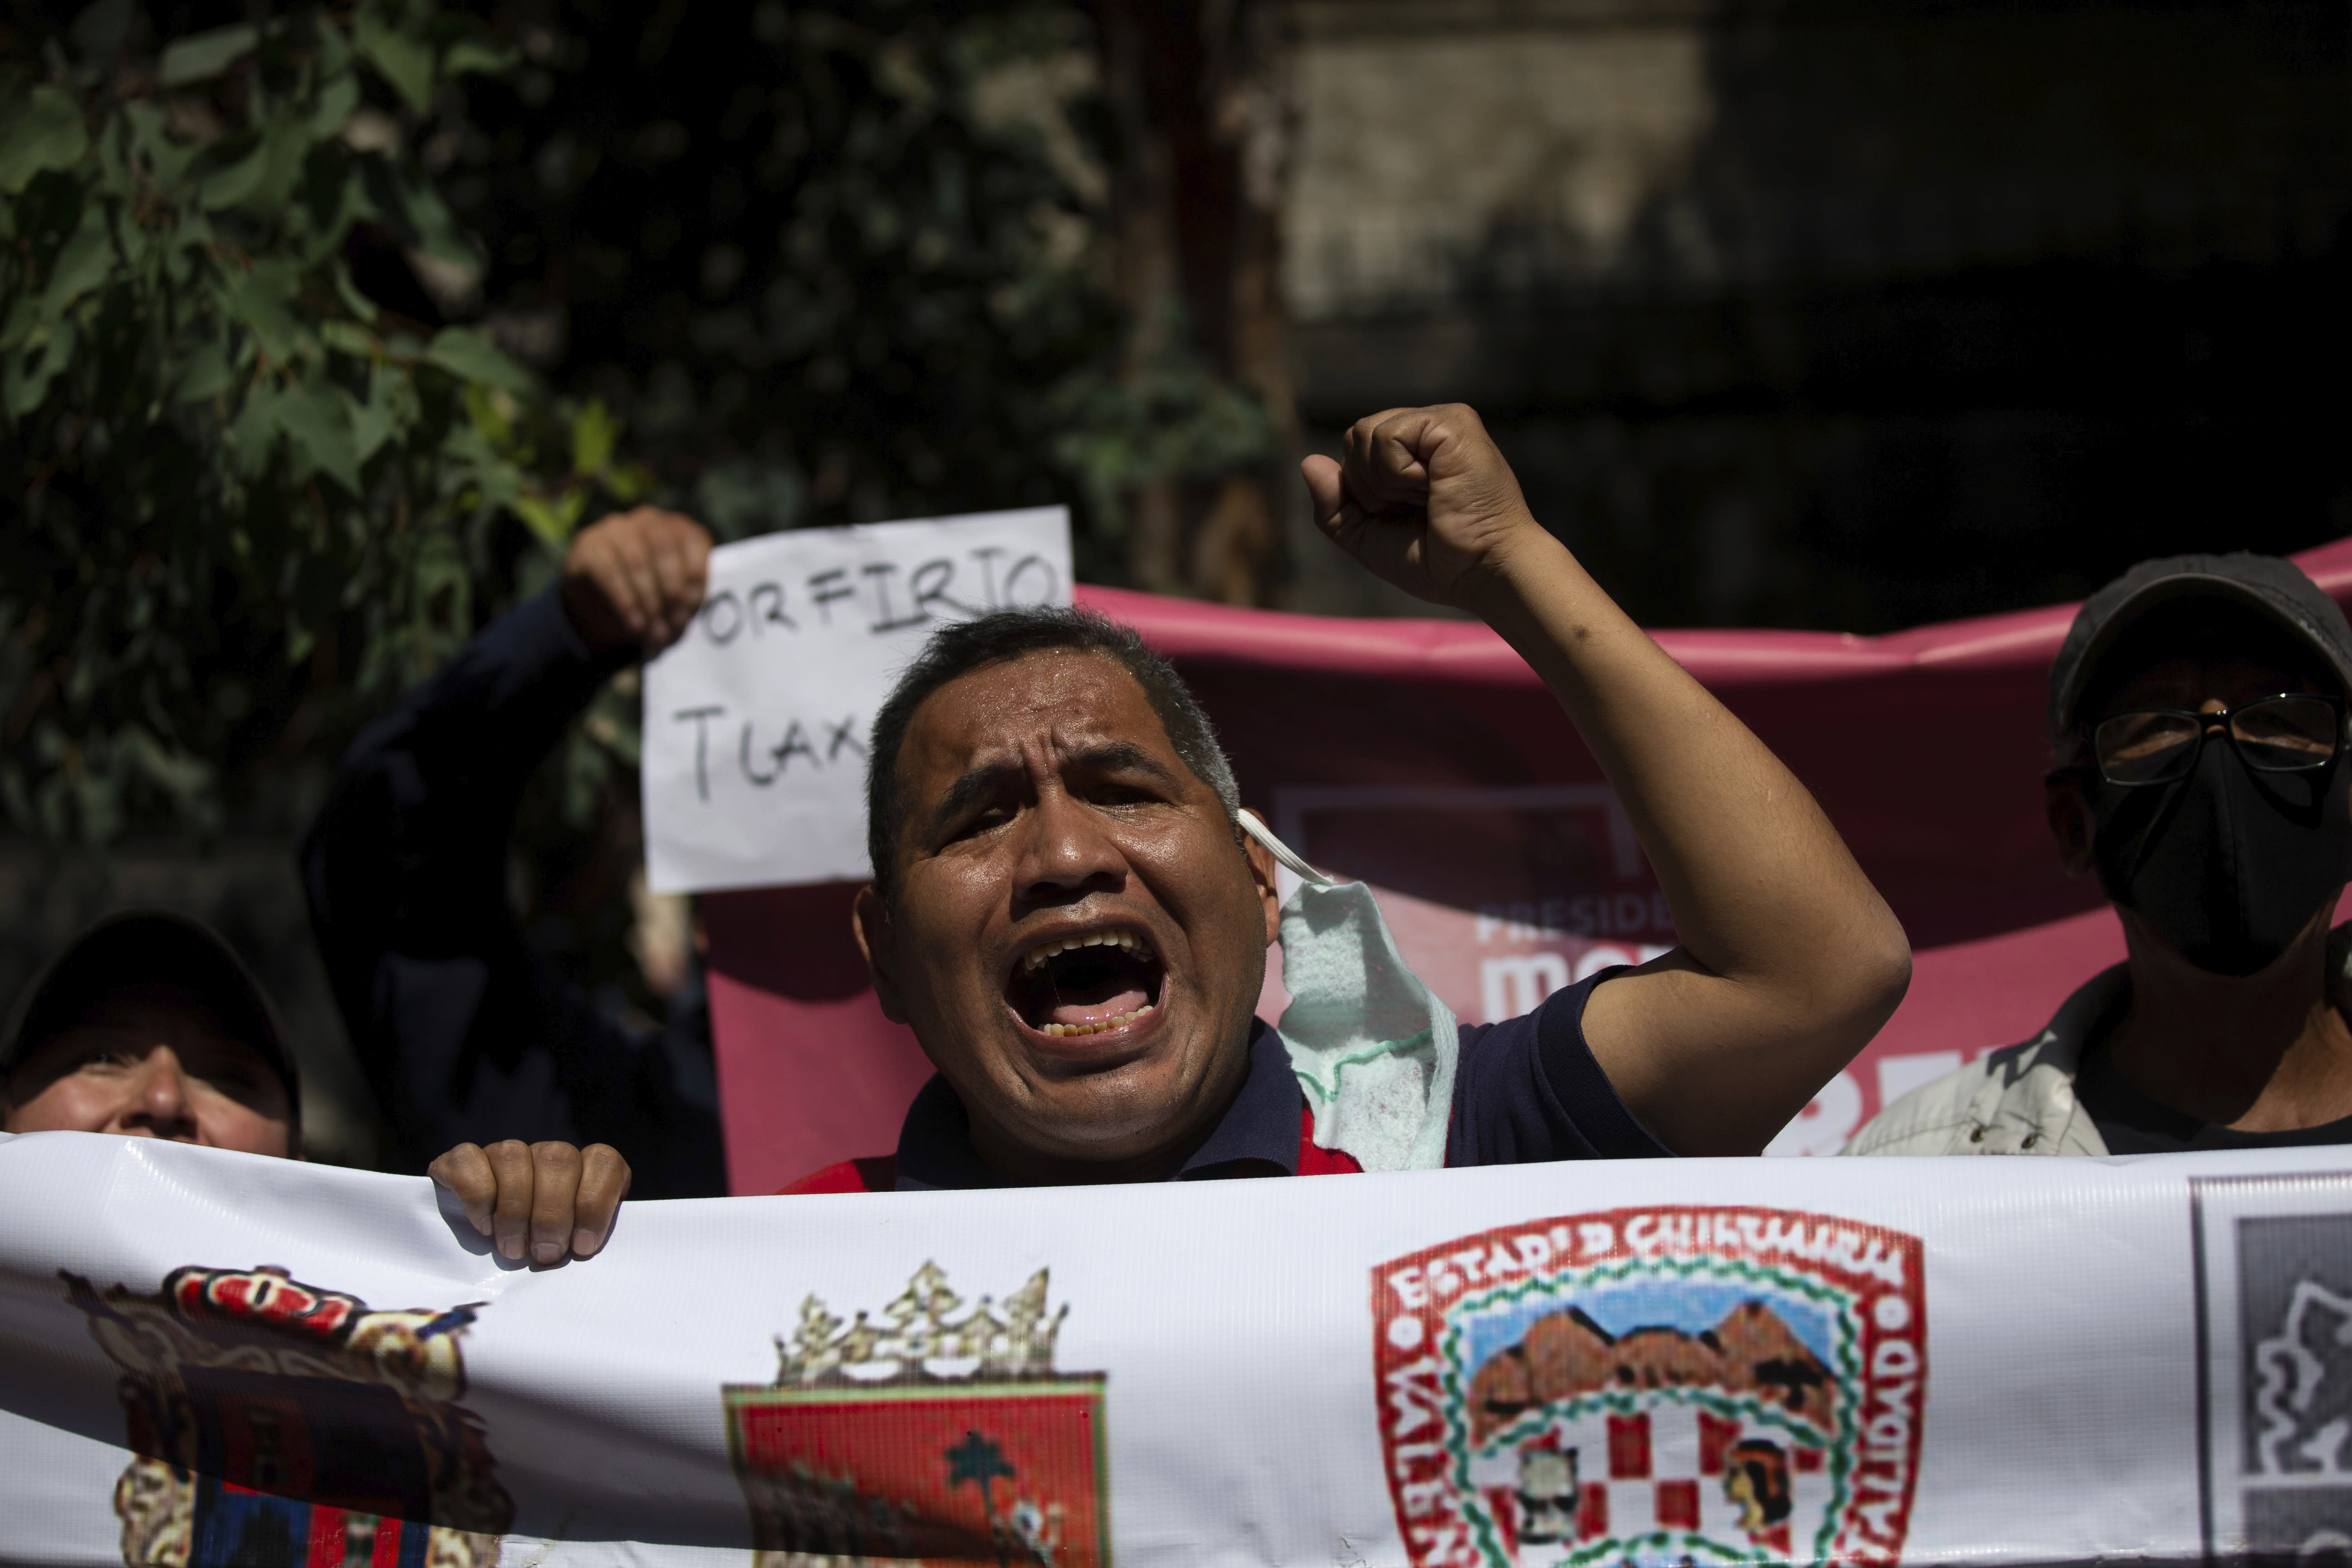 Supporters of Porfirio Munoz Ledo gather outside Morena party headquarters, amid elections to select the party's leader in Mexico City, Monday, Oct. 12, 2020. The ruling party is making its third try at electing a party leader. (AP Photo/Fernando Llano)